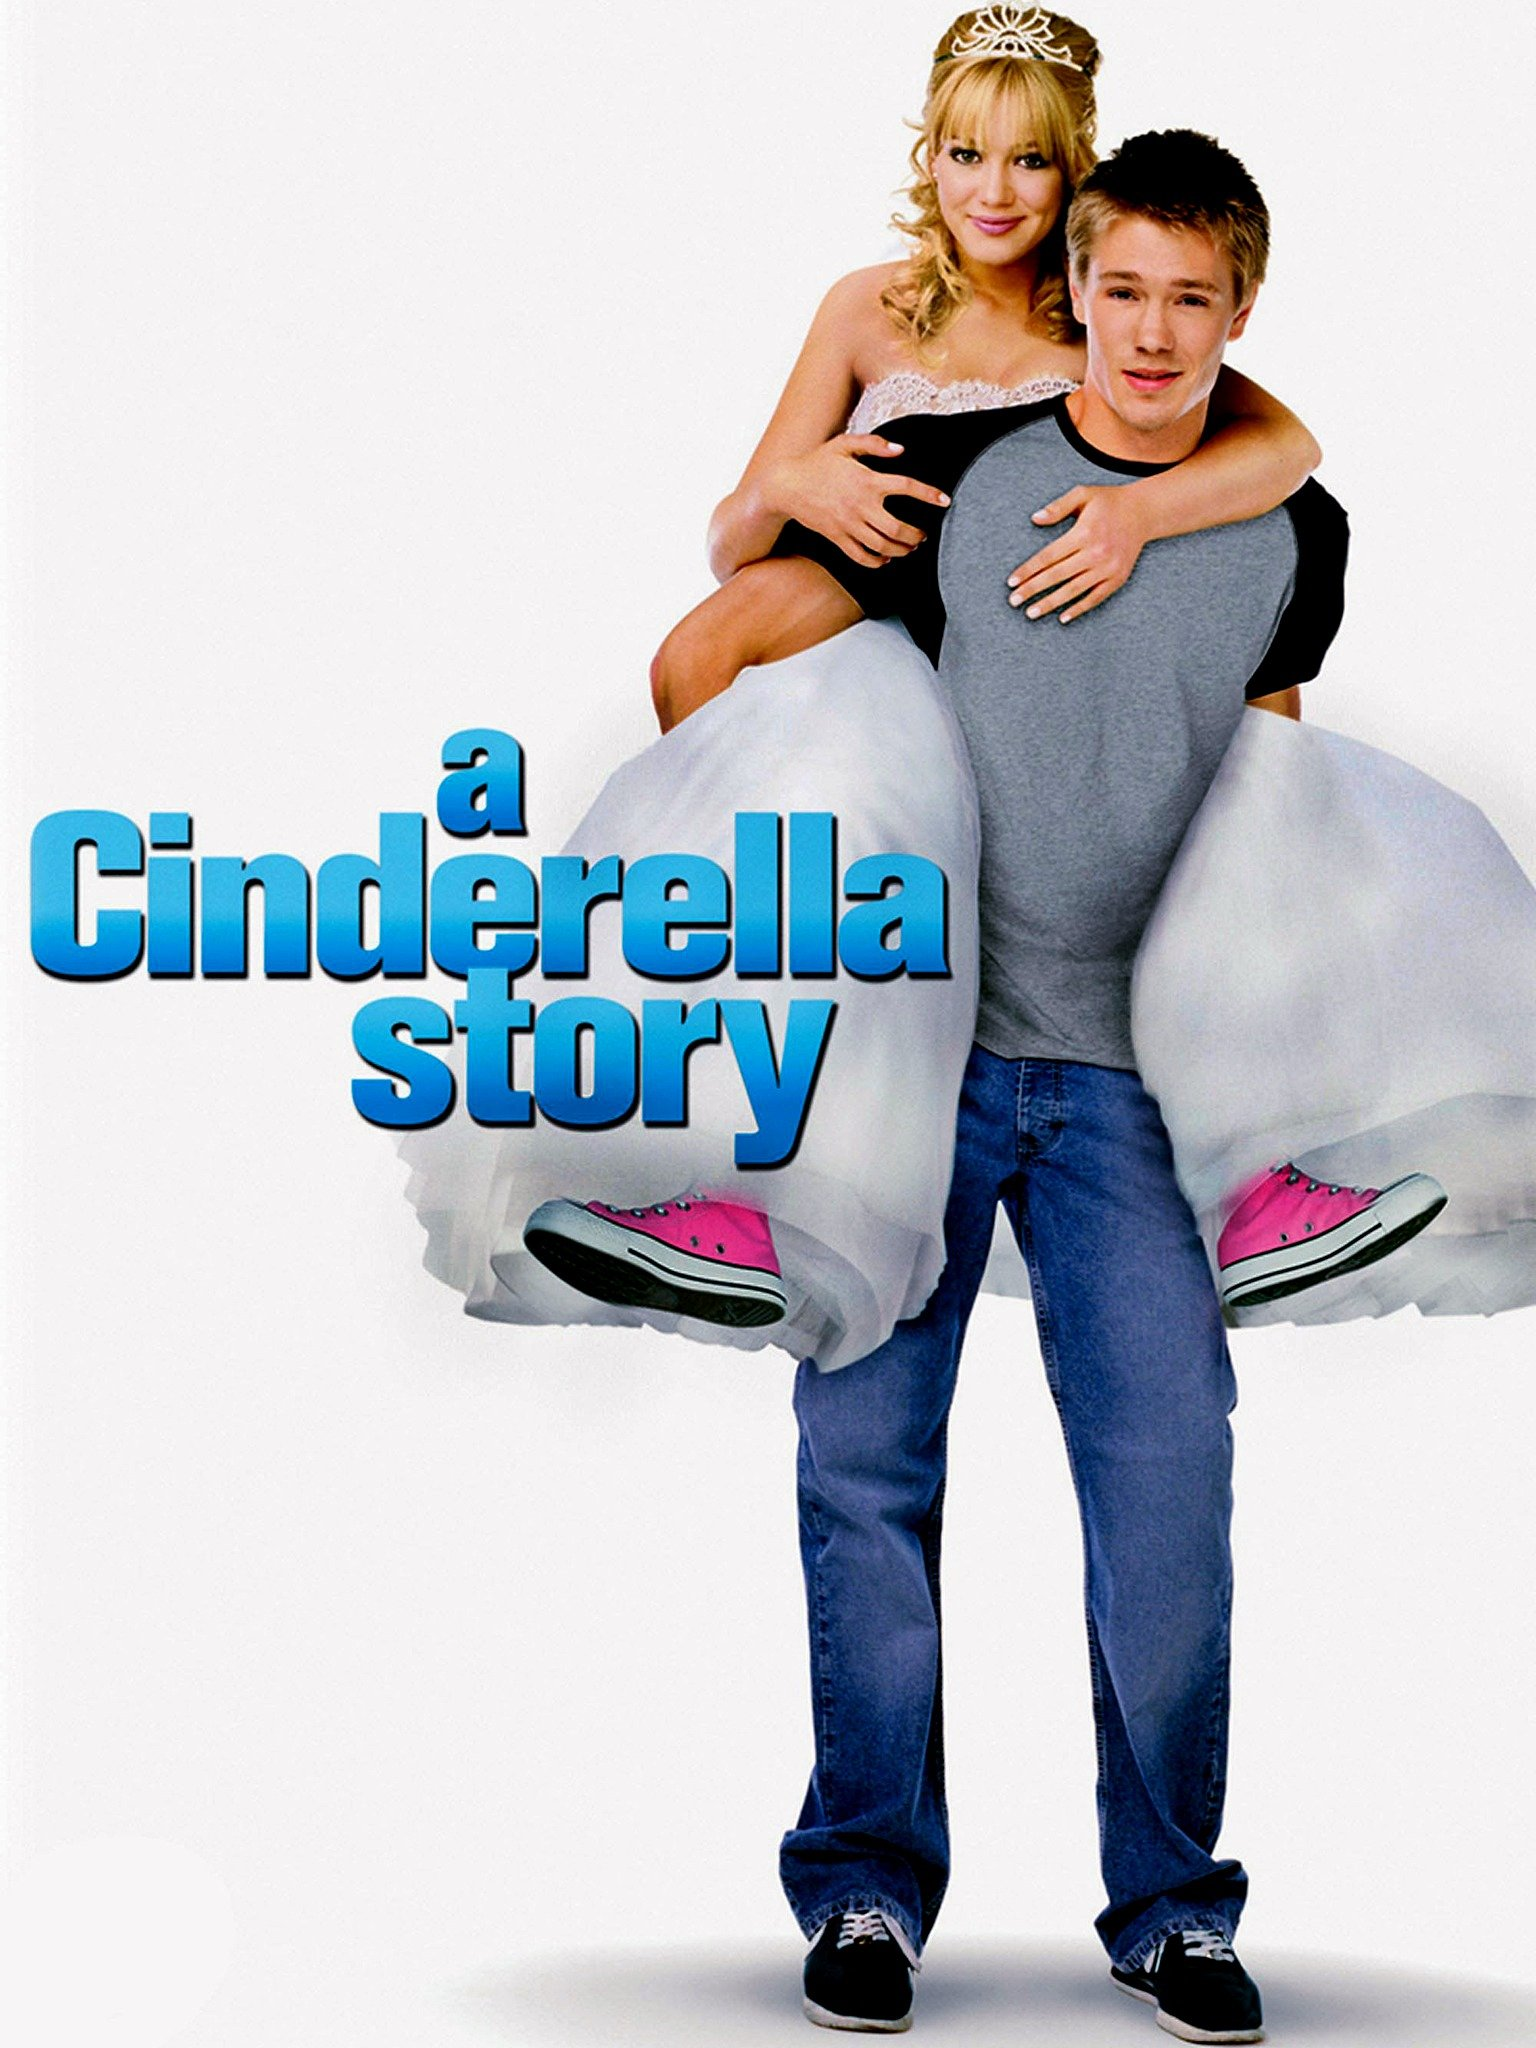 image a cinderella story itunes movie posterjpg